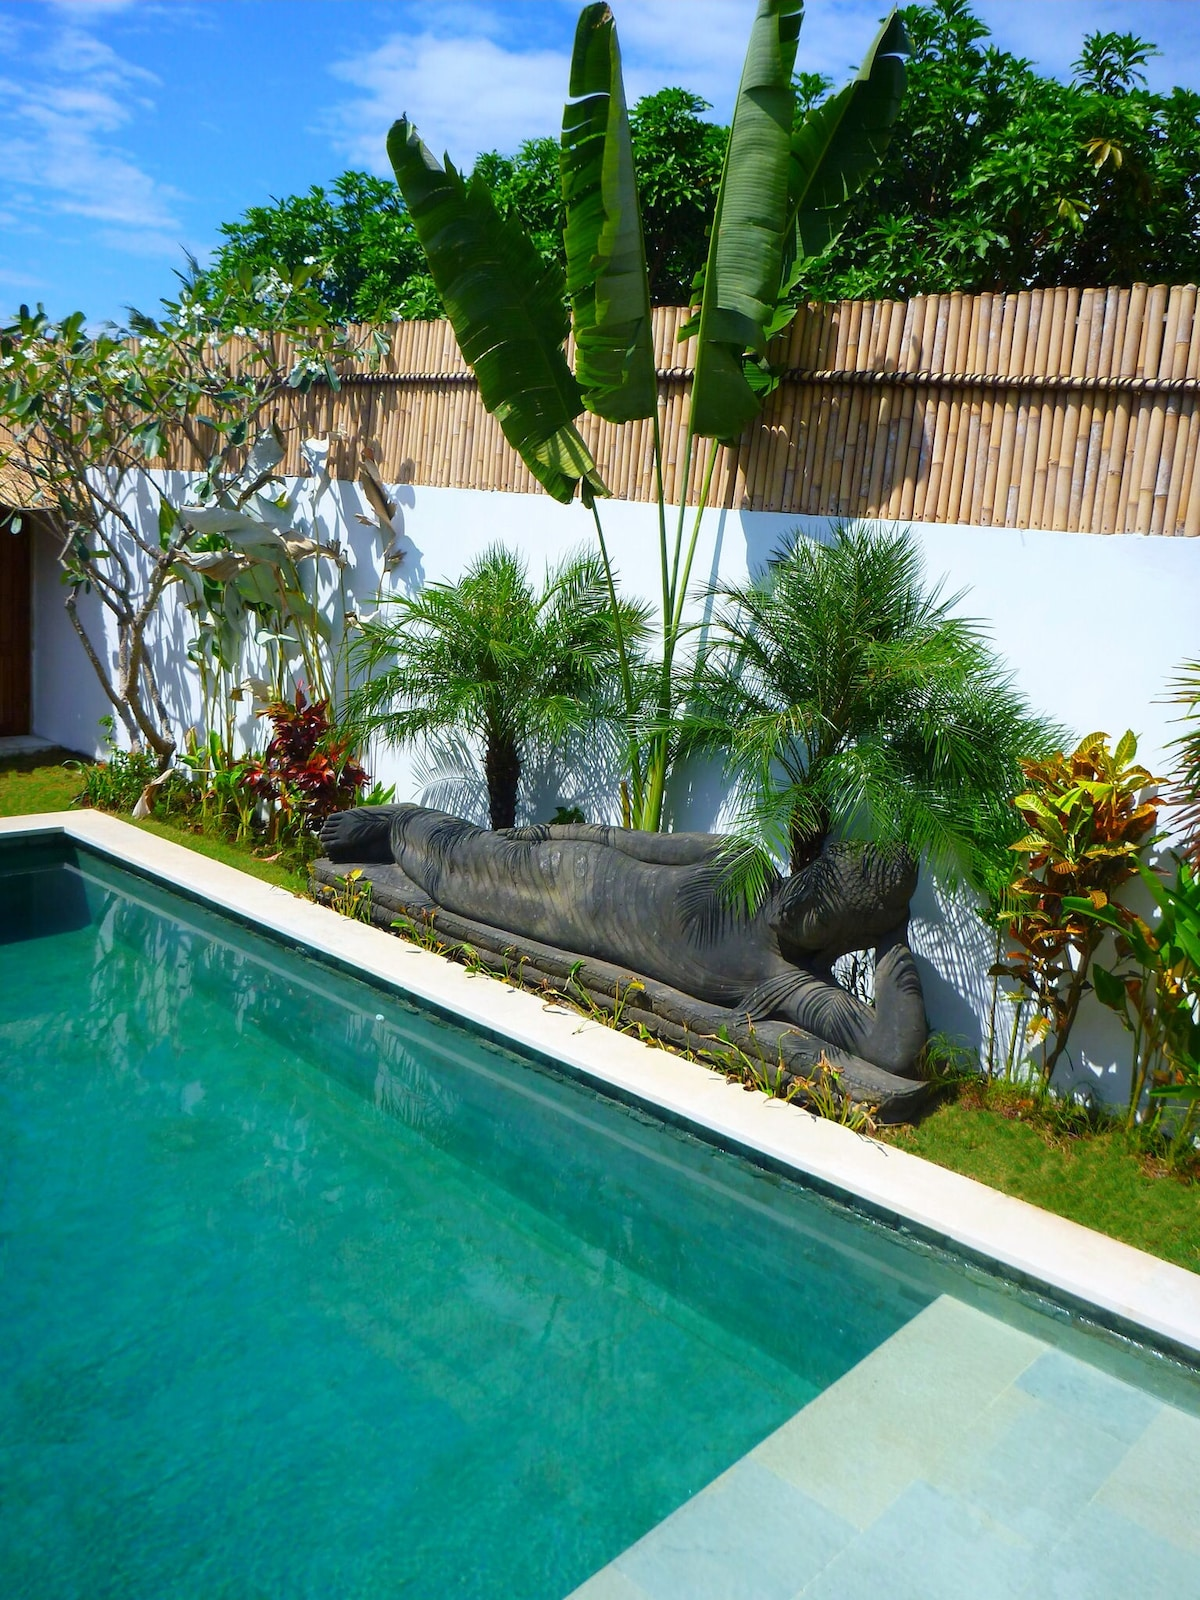 Super chilled out Buddha guards your villa and encourages a very relaxed stay!